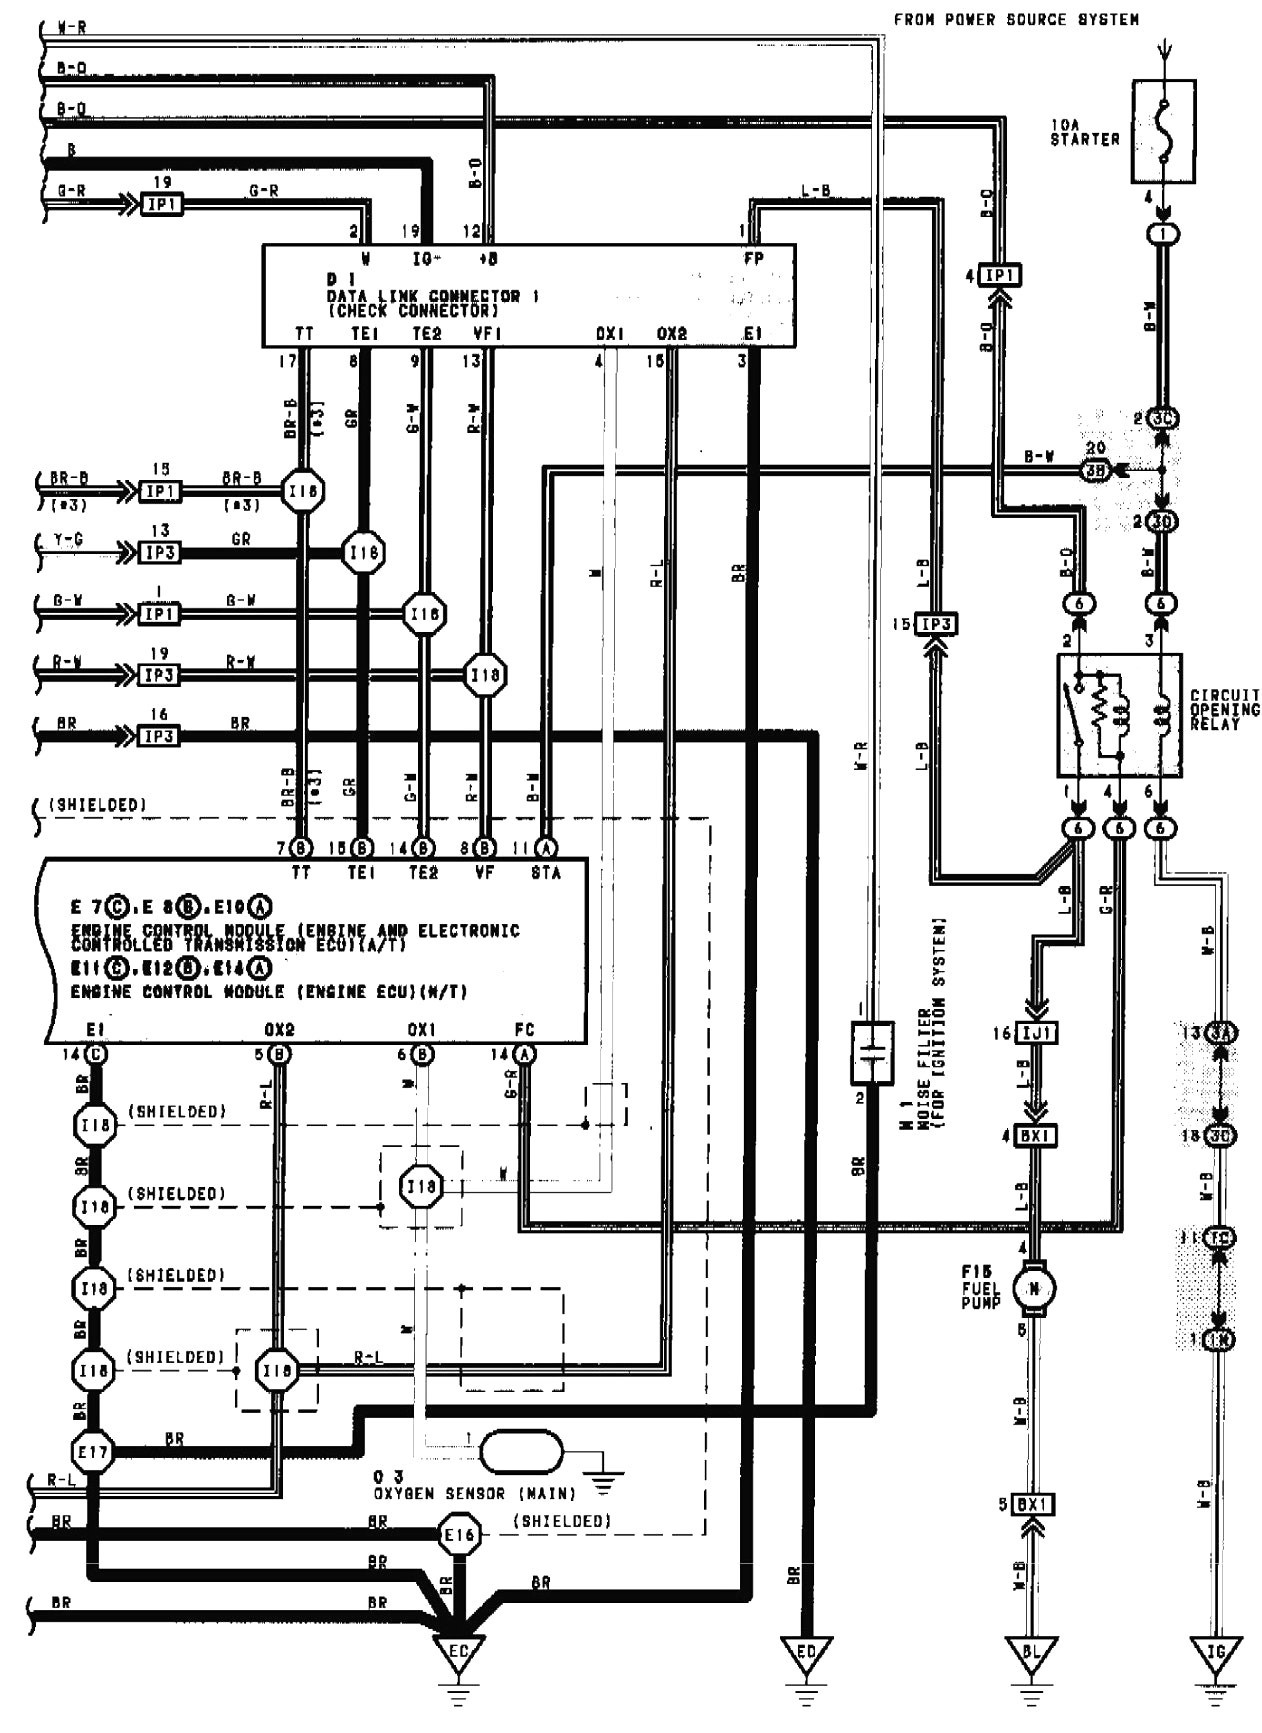 Diagram Likewise Toyota Ecu Wiring Diagrams On 2002 Toyota